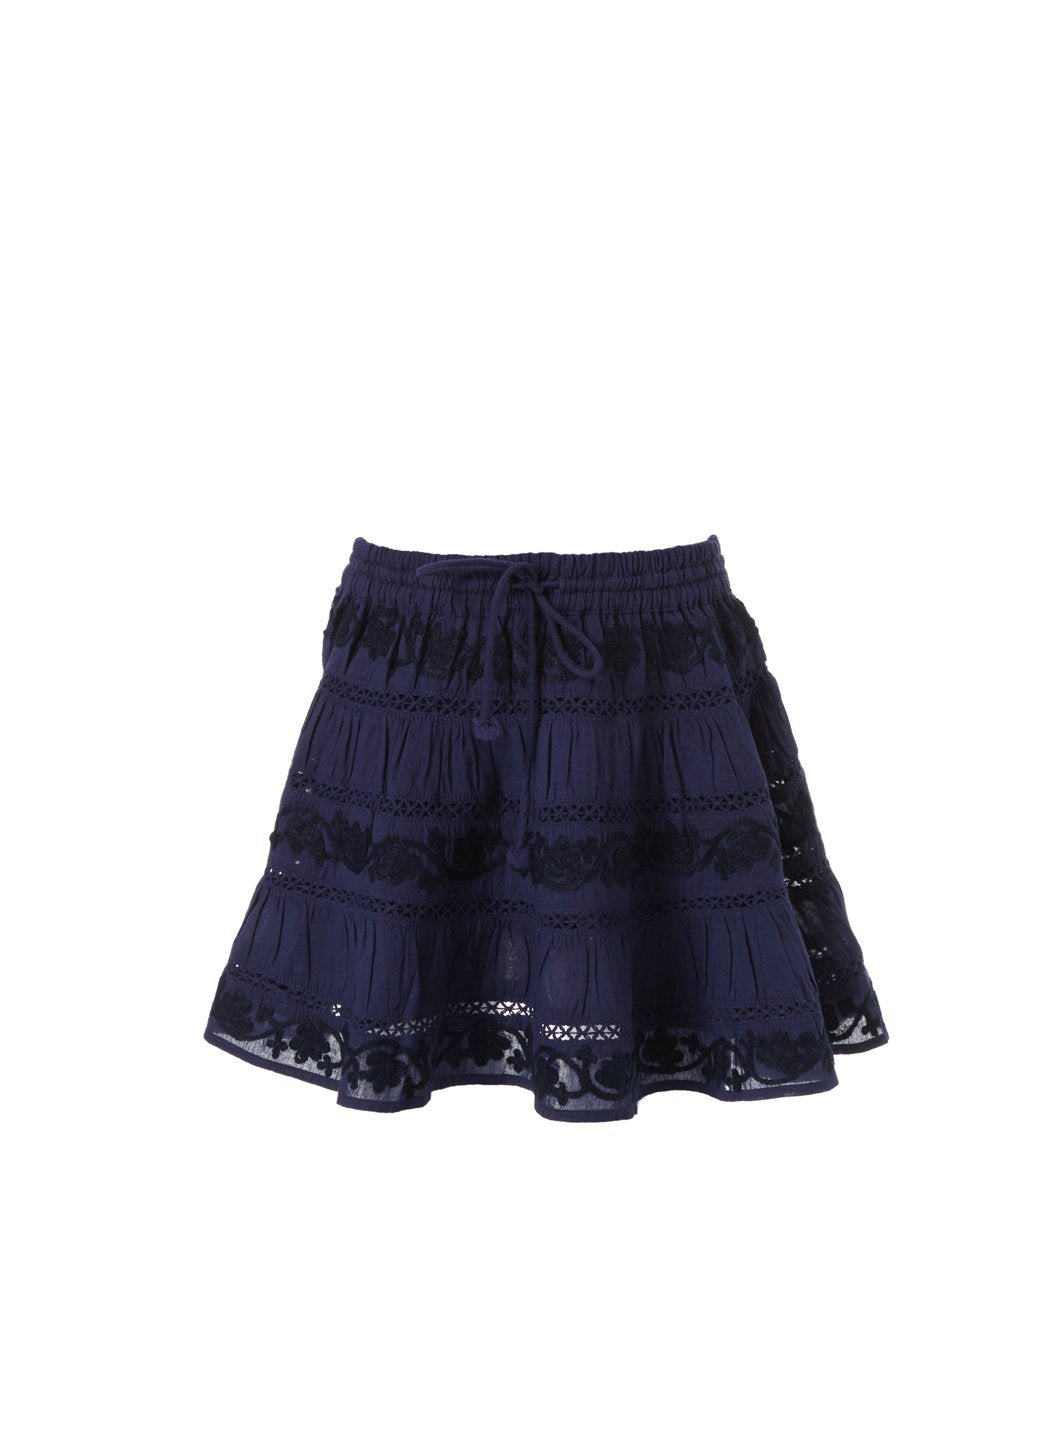 baby anita navy skirt 2019